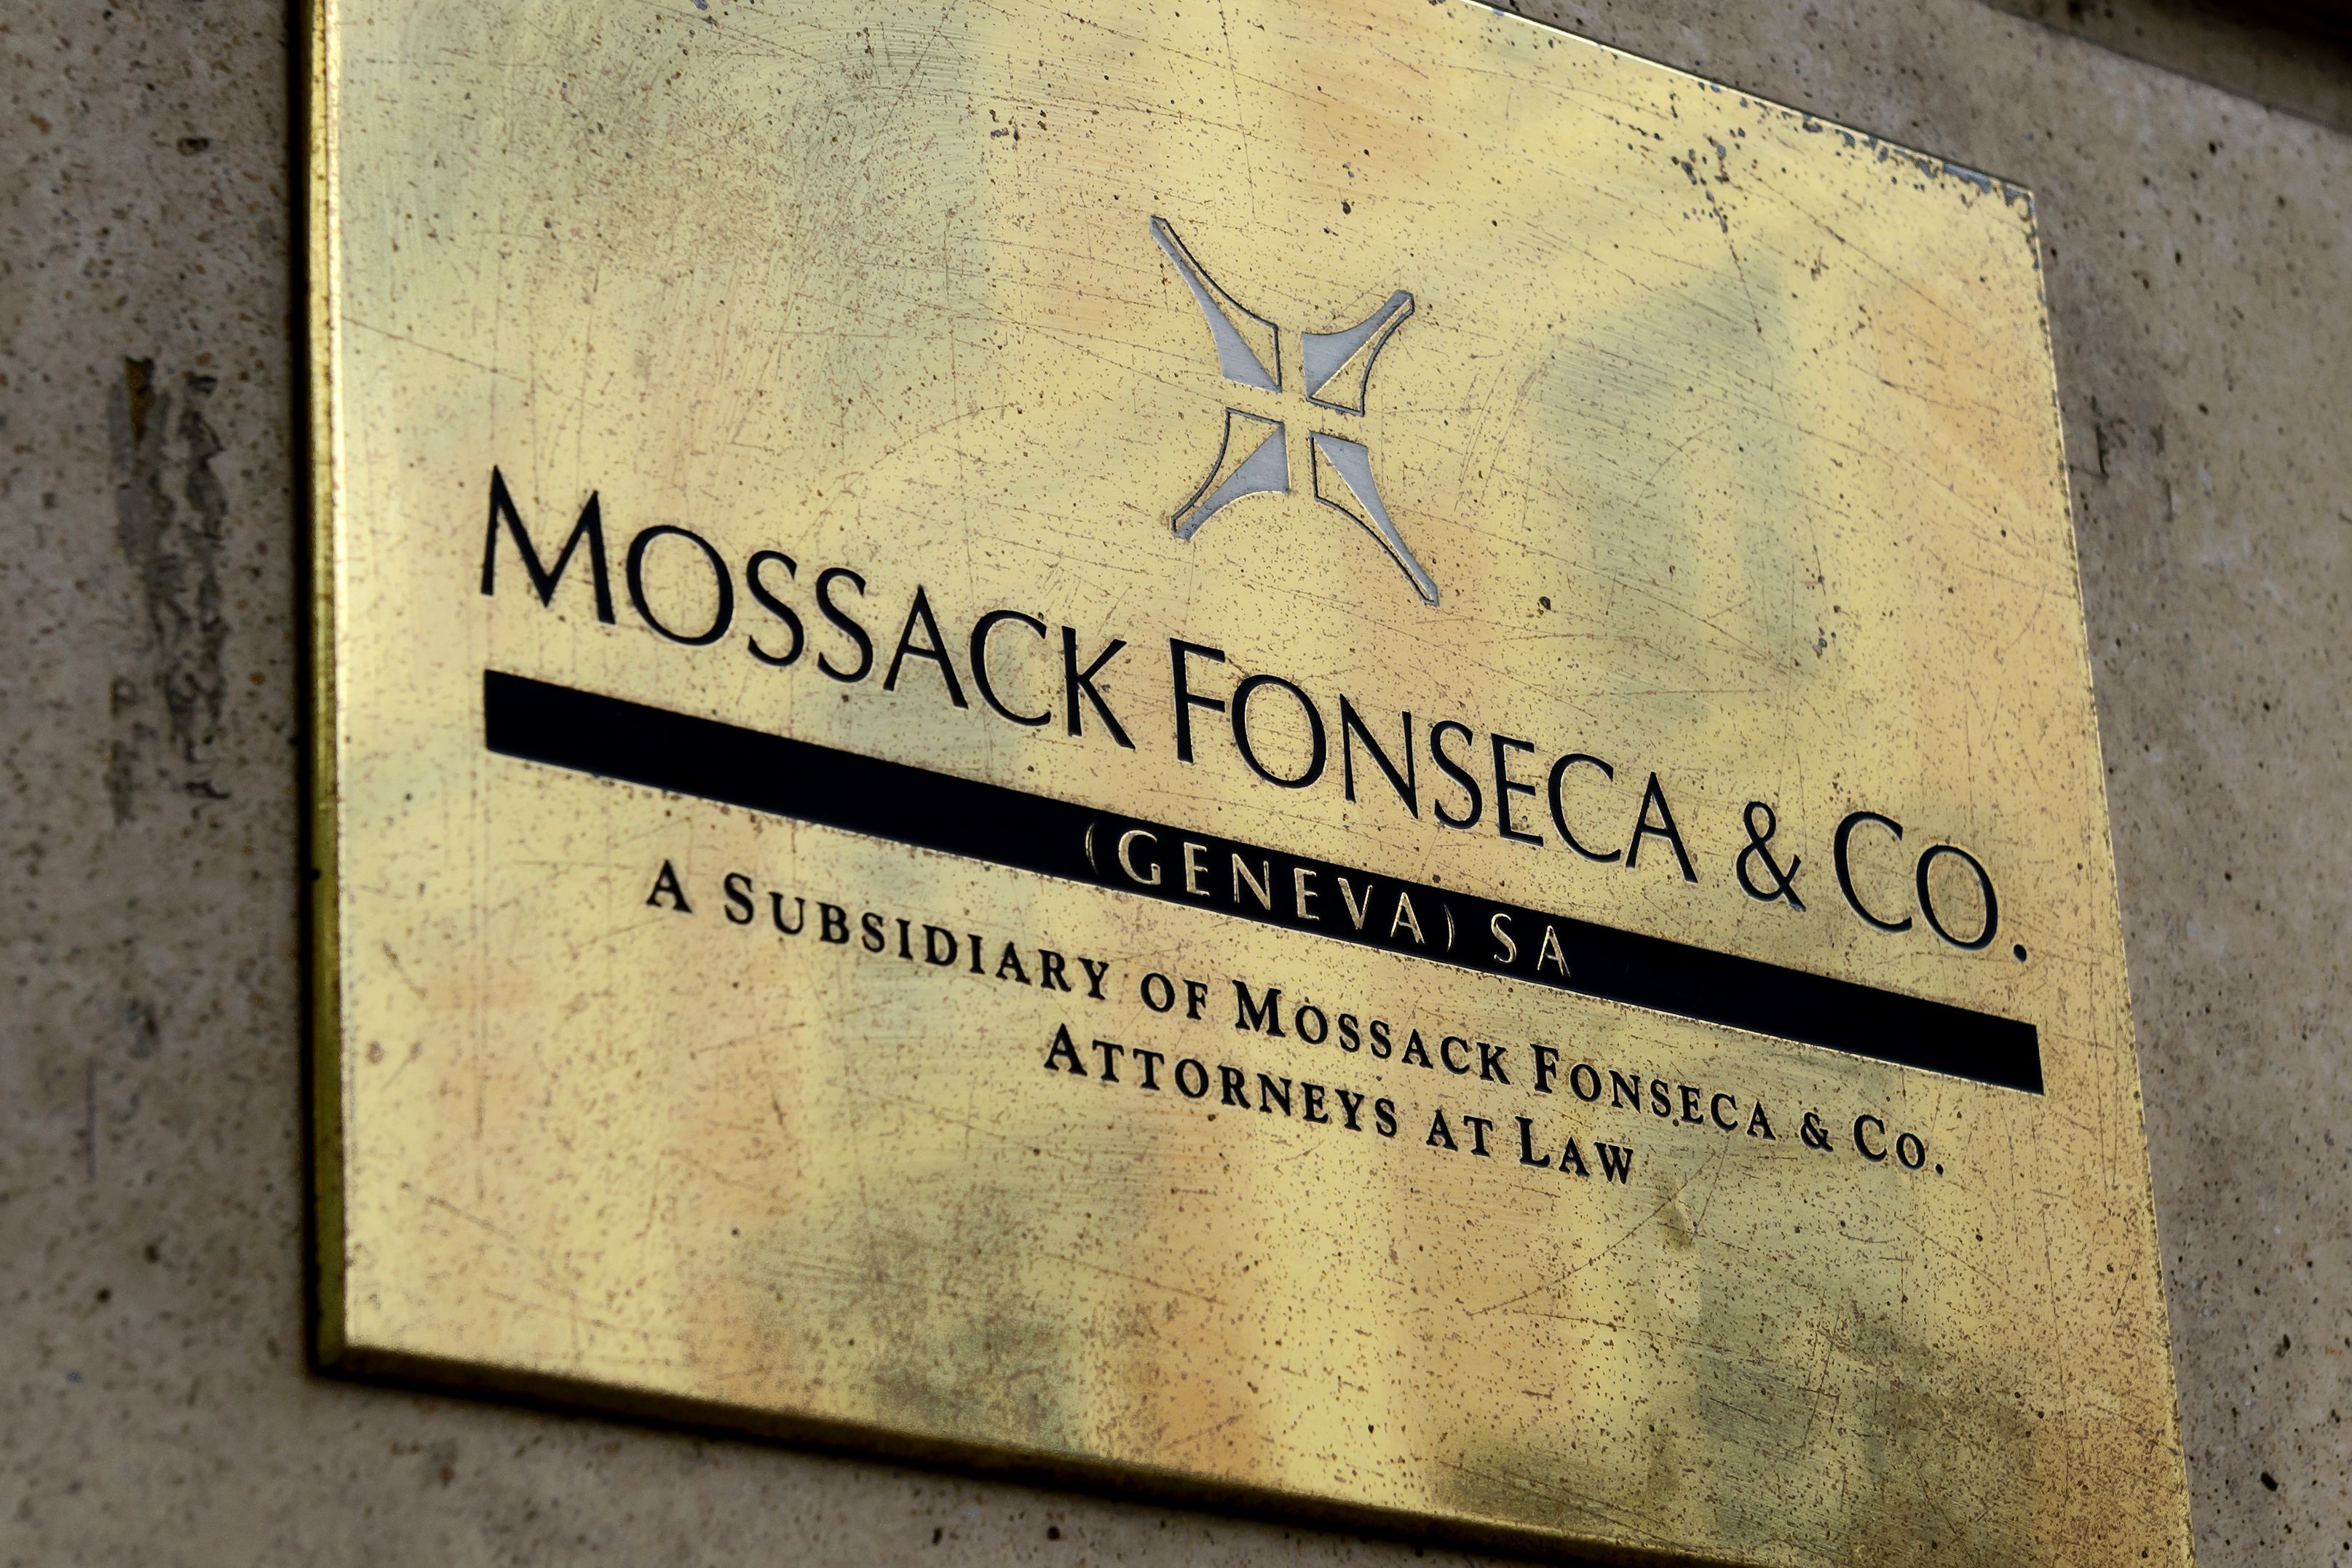 If This Mossack Fonseca Investigation Is Real, I Wonder What Will Turn Up in Russia